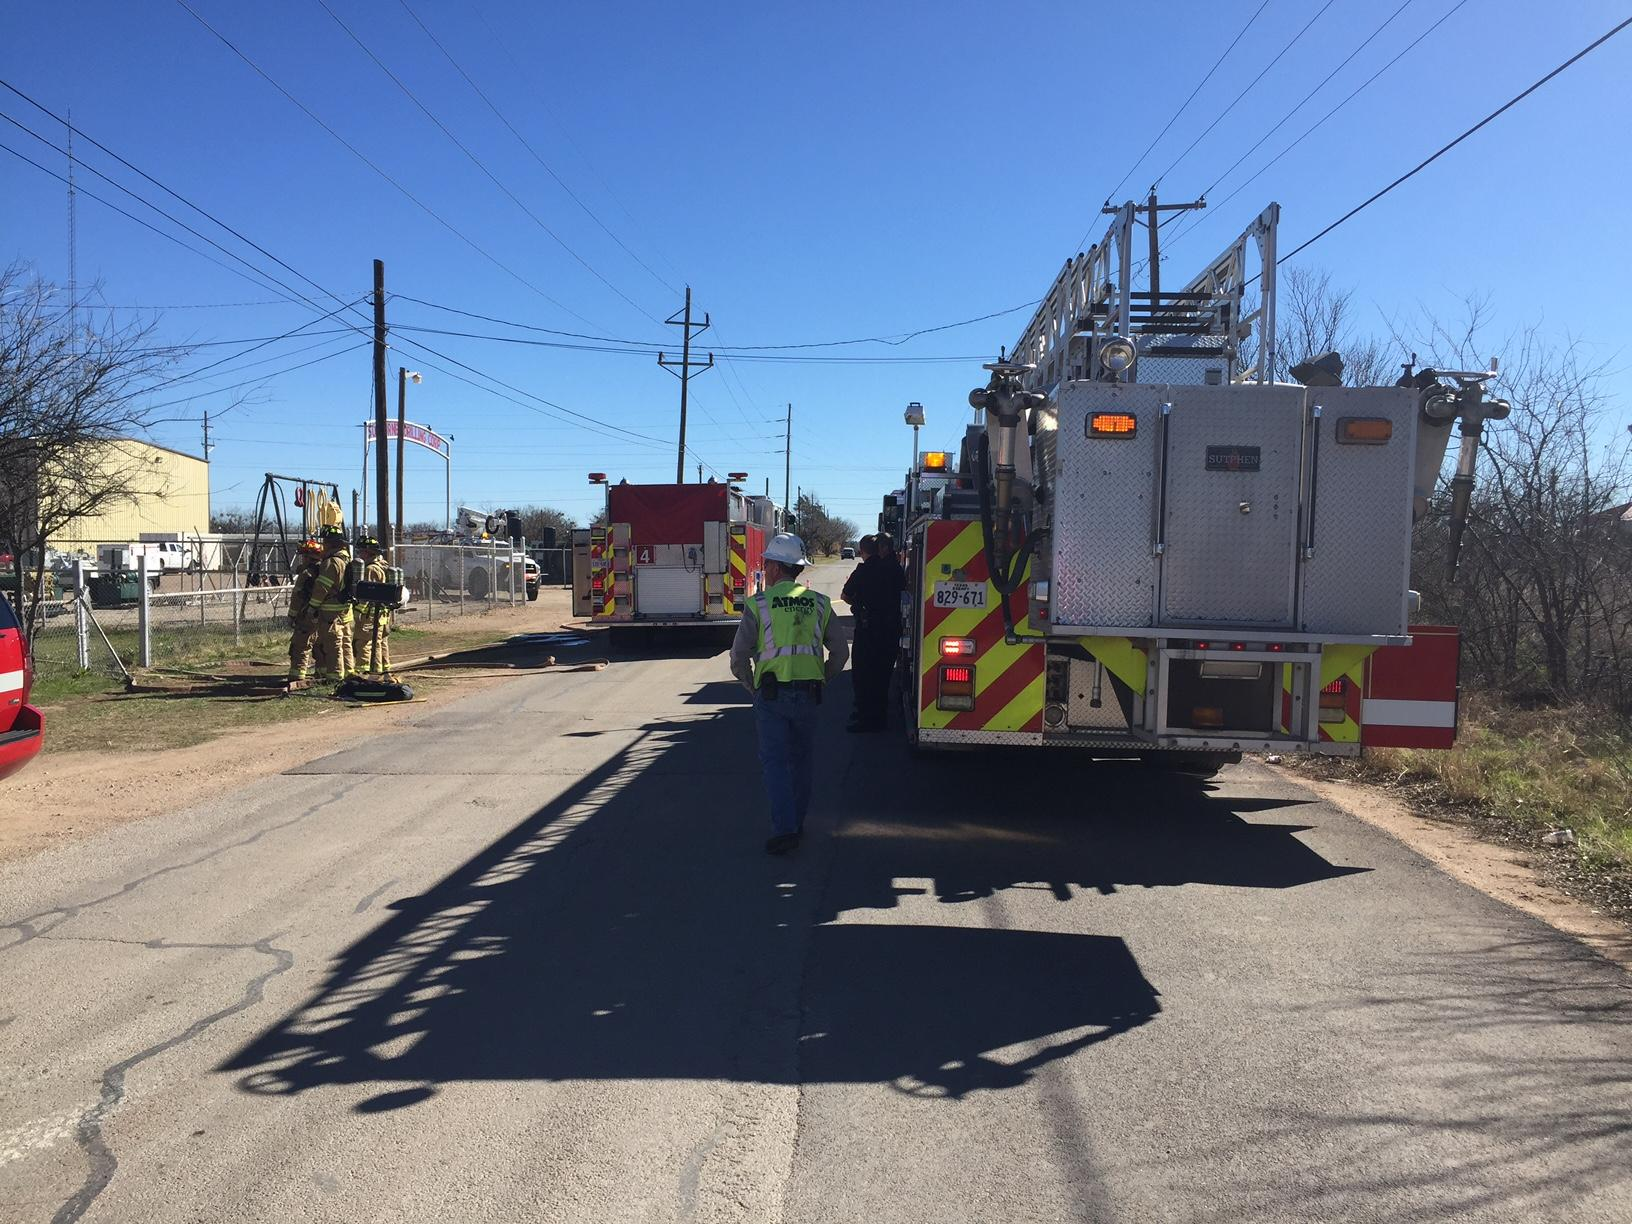 Firefighters fought a house fire Tuesday morning in the 800 block of Anson Avenue in north Abilene.